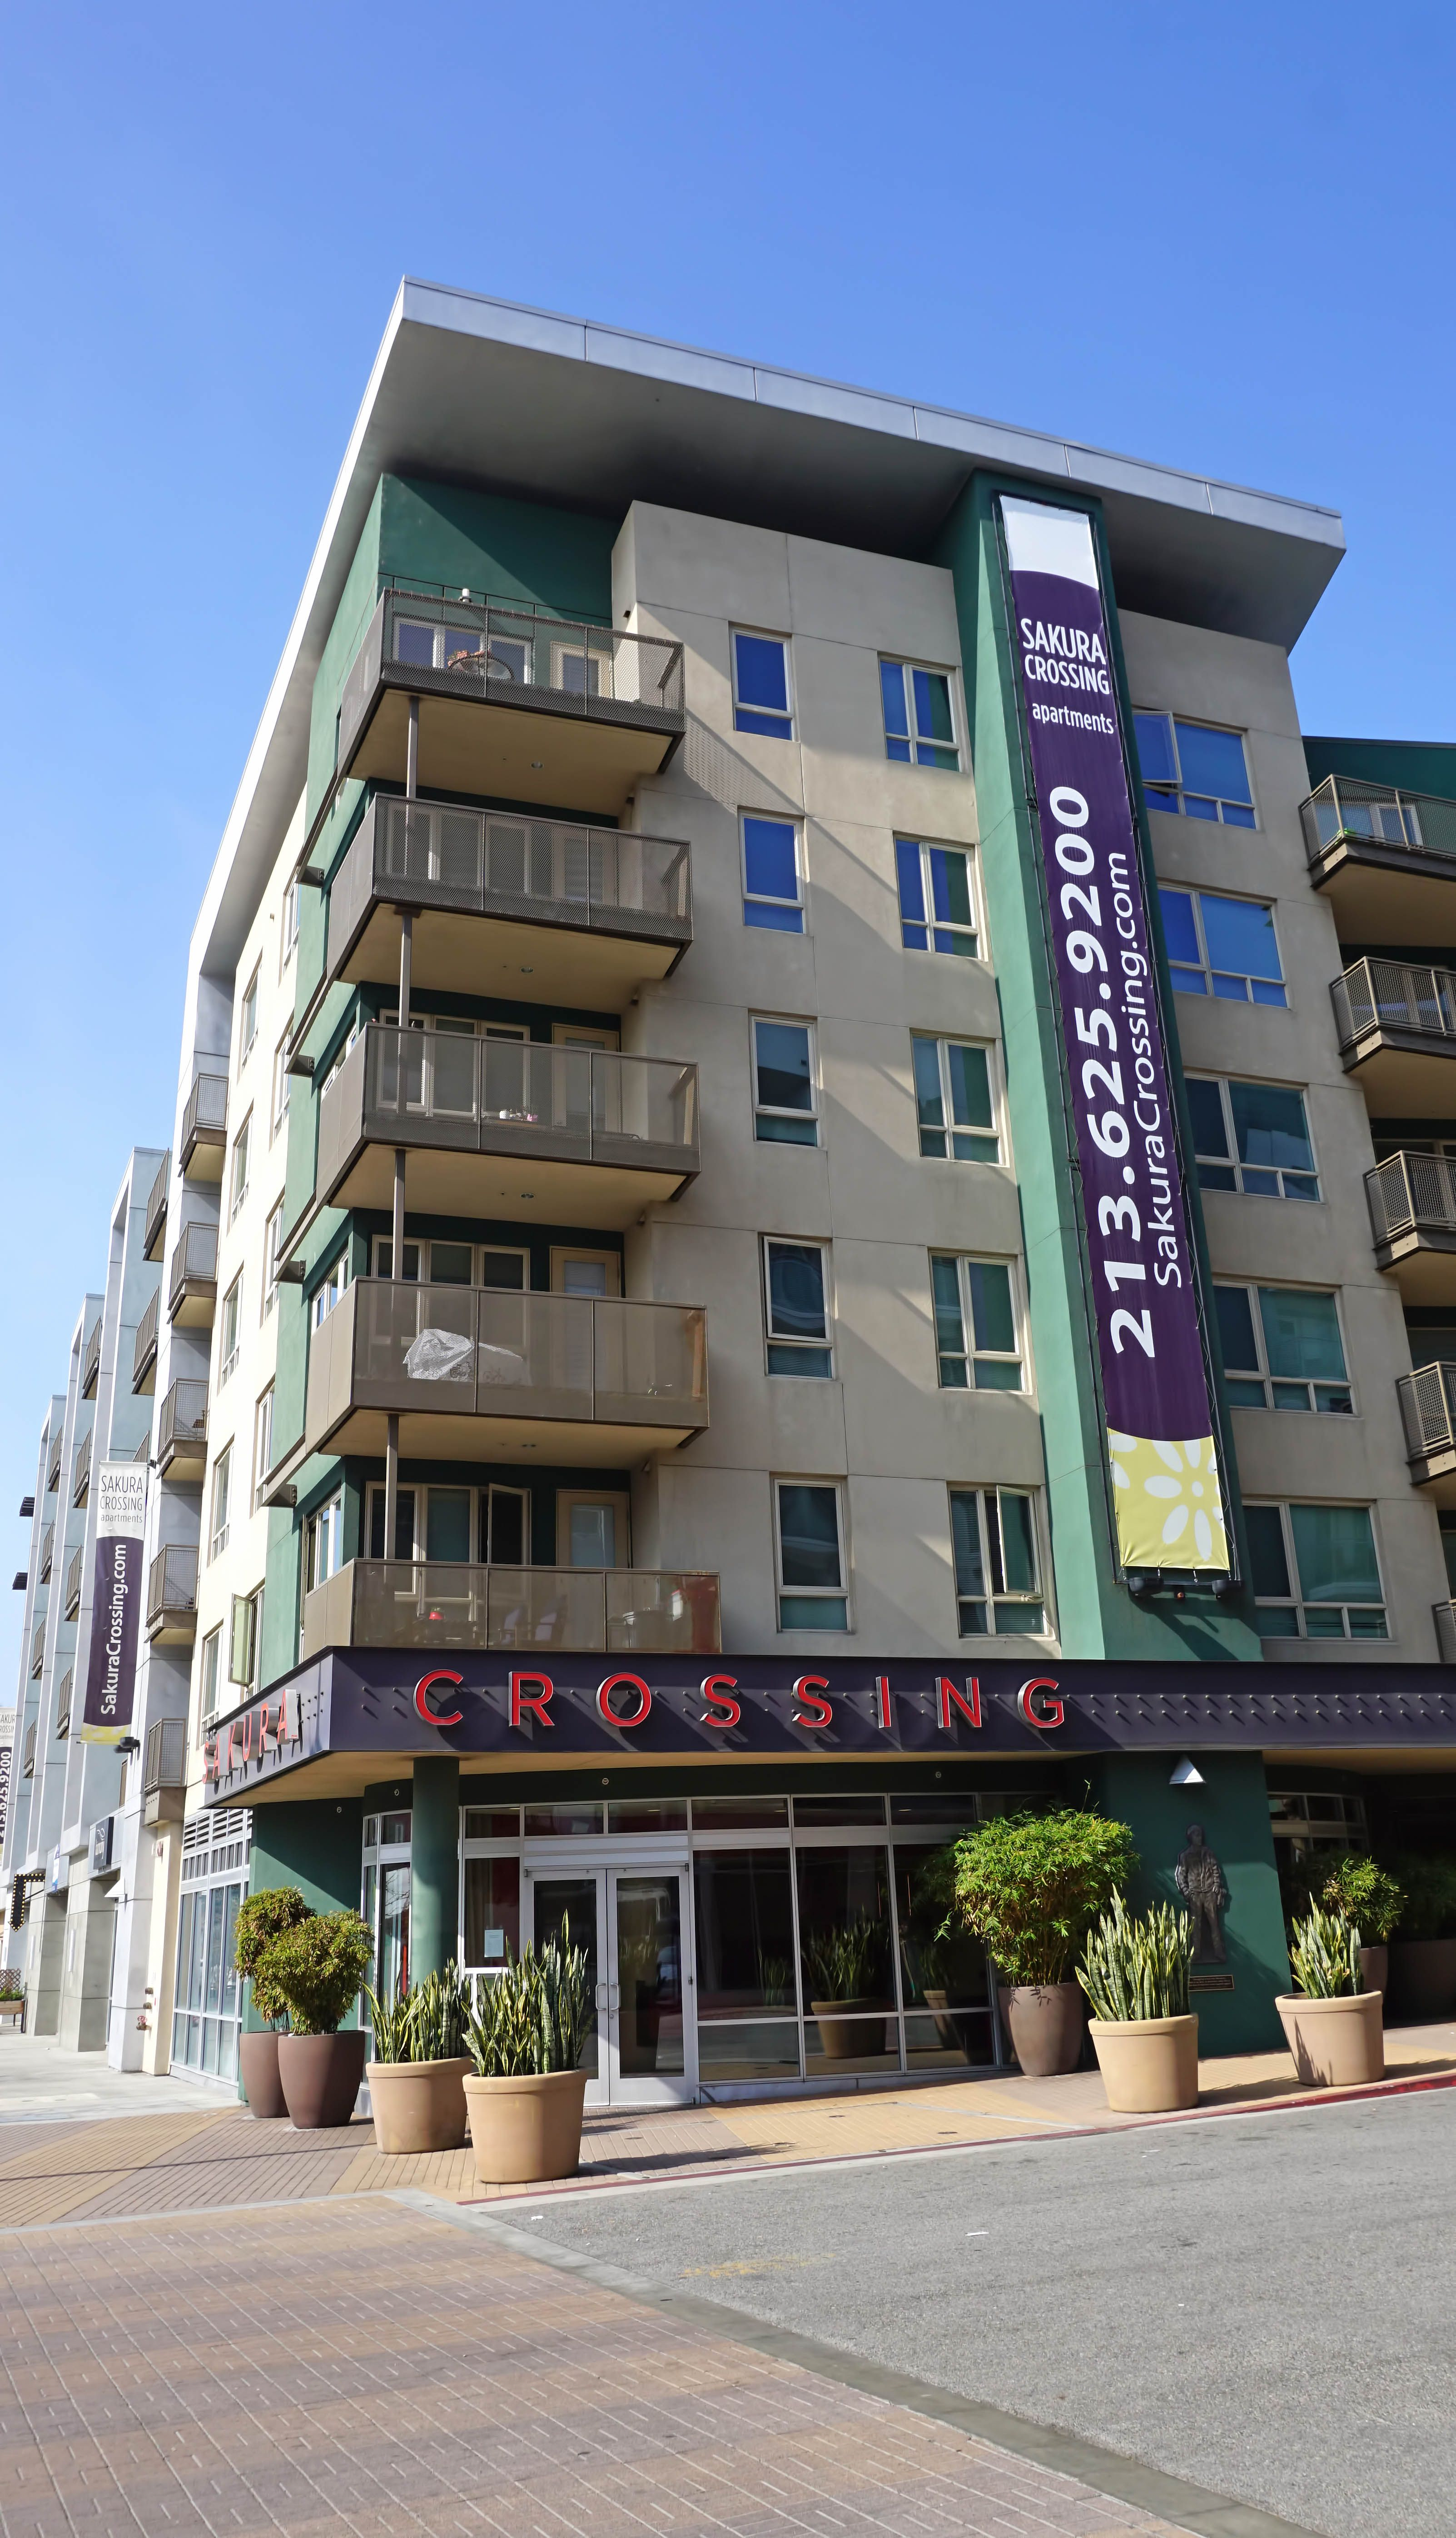 Sakura Crossing Apartments Offer An Urban Elegant Design In The Heart Of The Lively And Exciting Little Tokyo N Tokyo Neighborhoods Coastal Cities Santa Monica